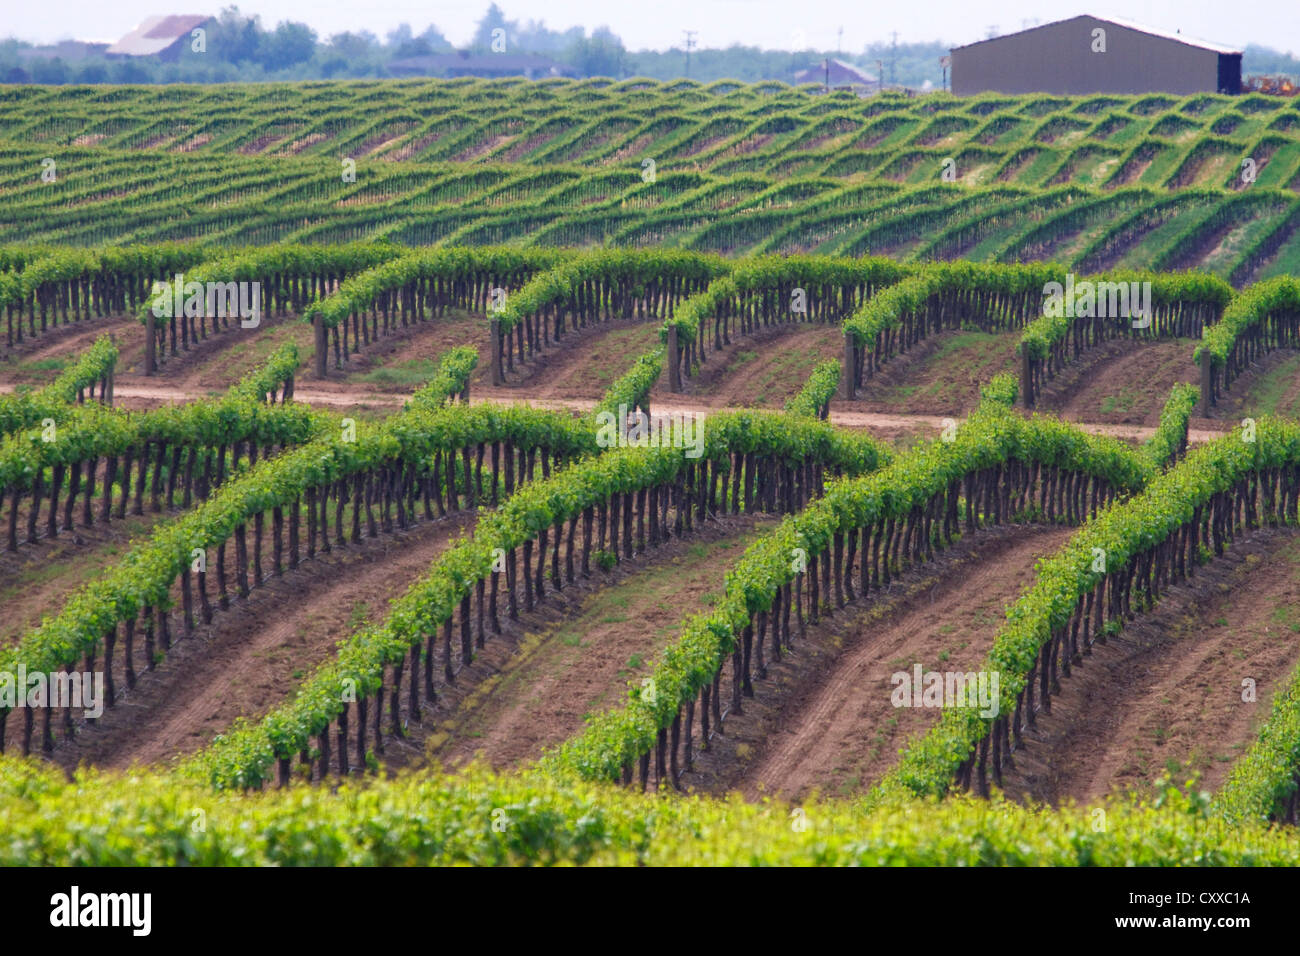 vineyards-owned-by-ernest-and-julio-gall